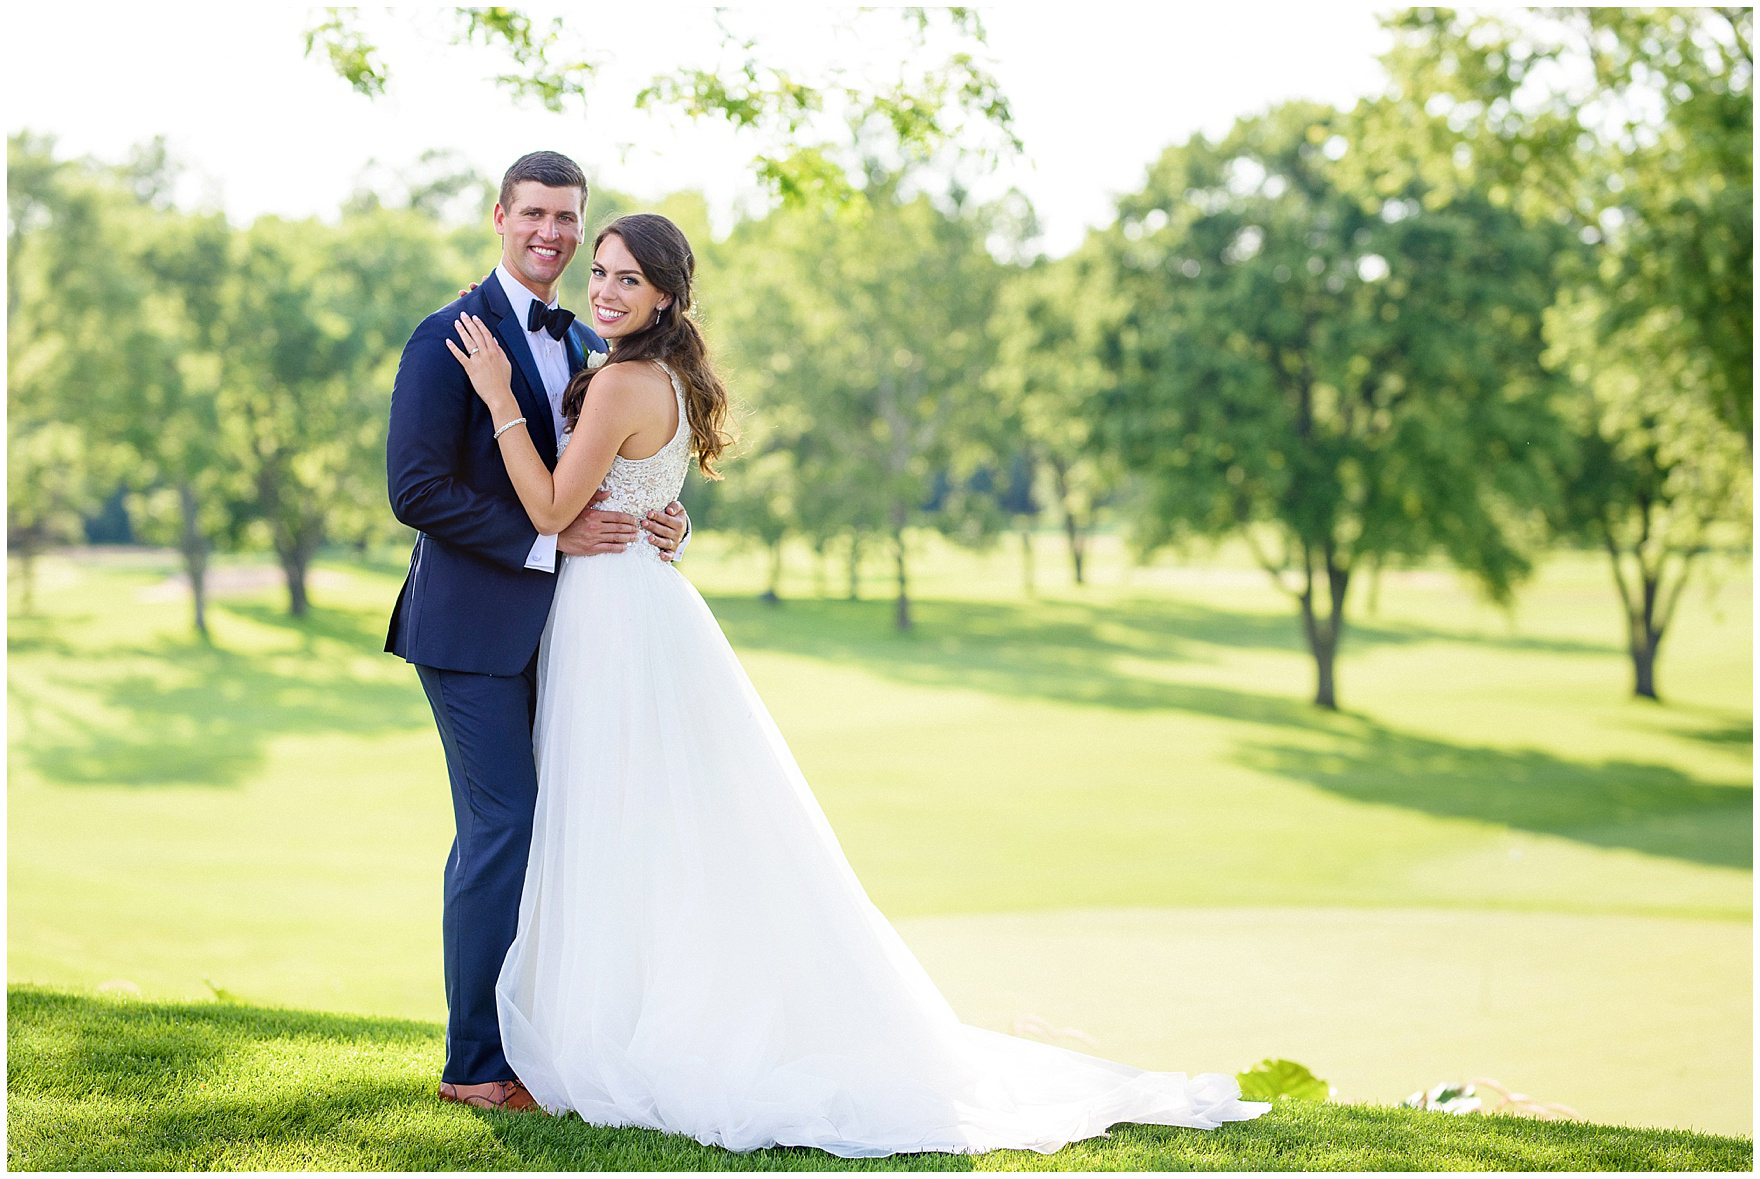 The bride and groom pose on the golf course during a Biltmore Country Club Barrington wedding.